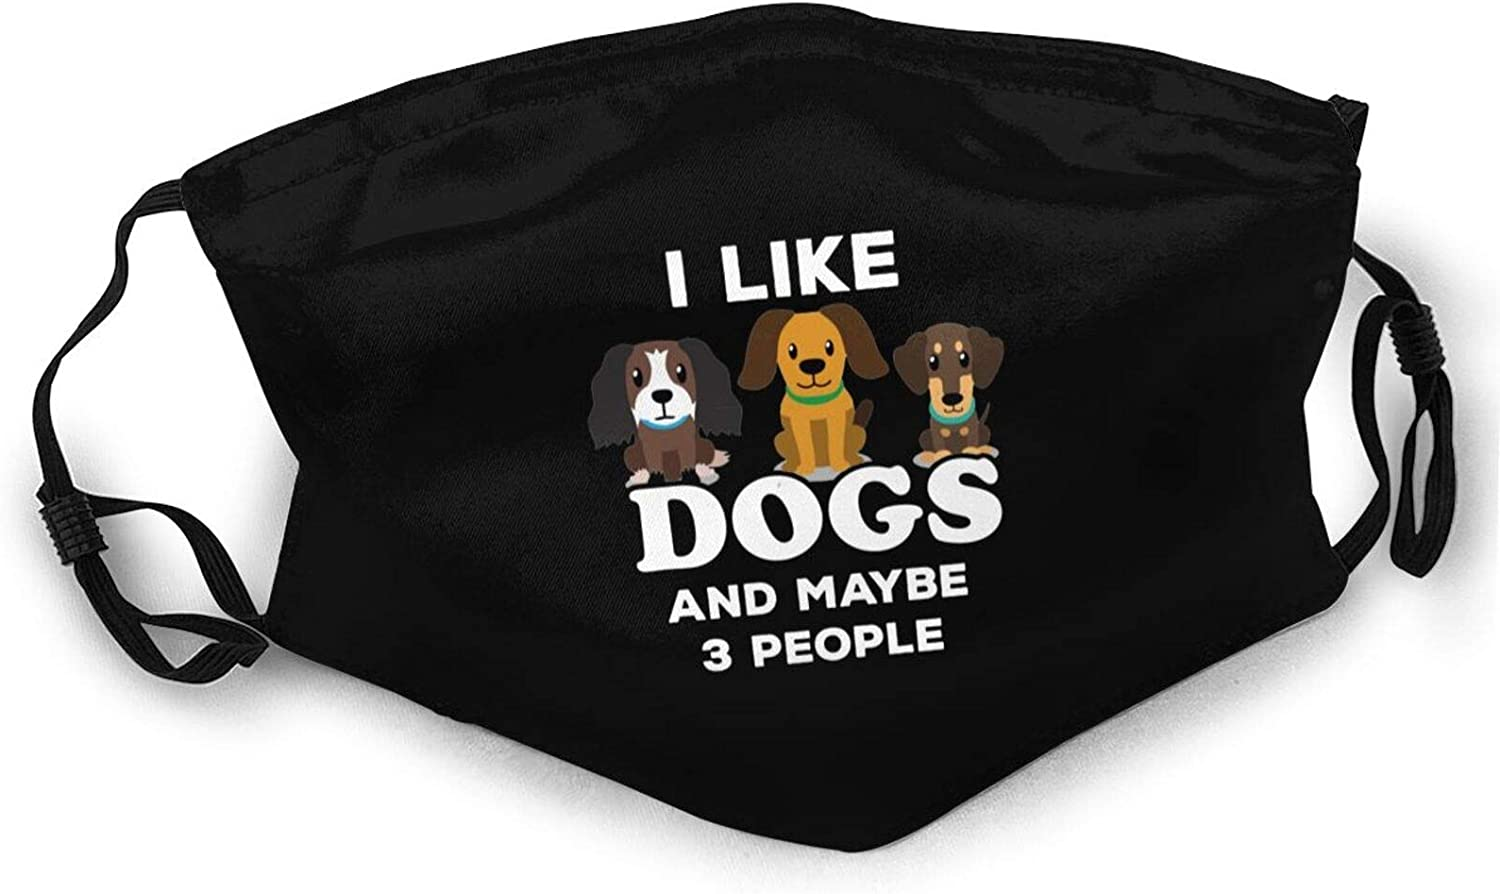 I Like Dogs and Maybe 3 People Face Mask Unisex Reusable Anti-Dust Windproof Face Mask Outdoor Fashion Bandanas Balaclava Black for Camping Travelling Cycling